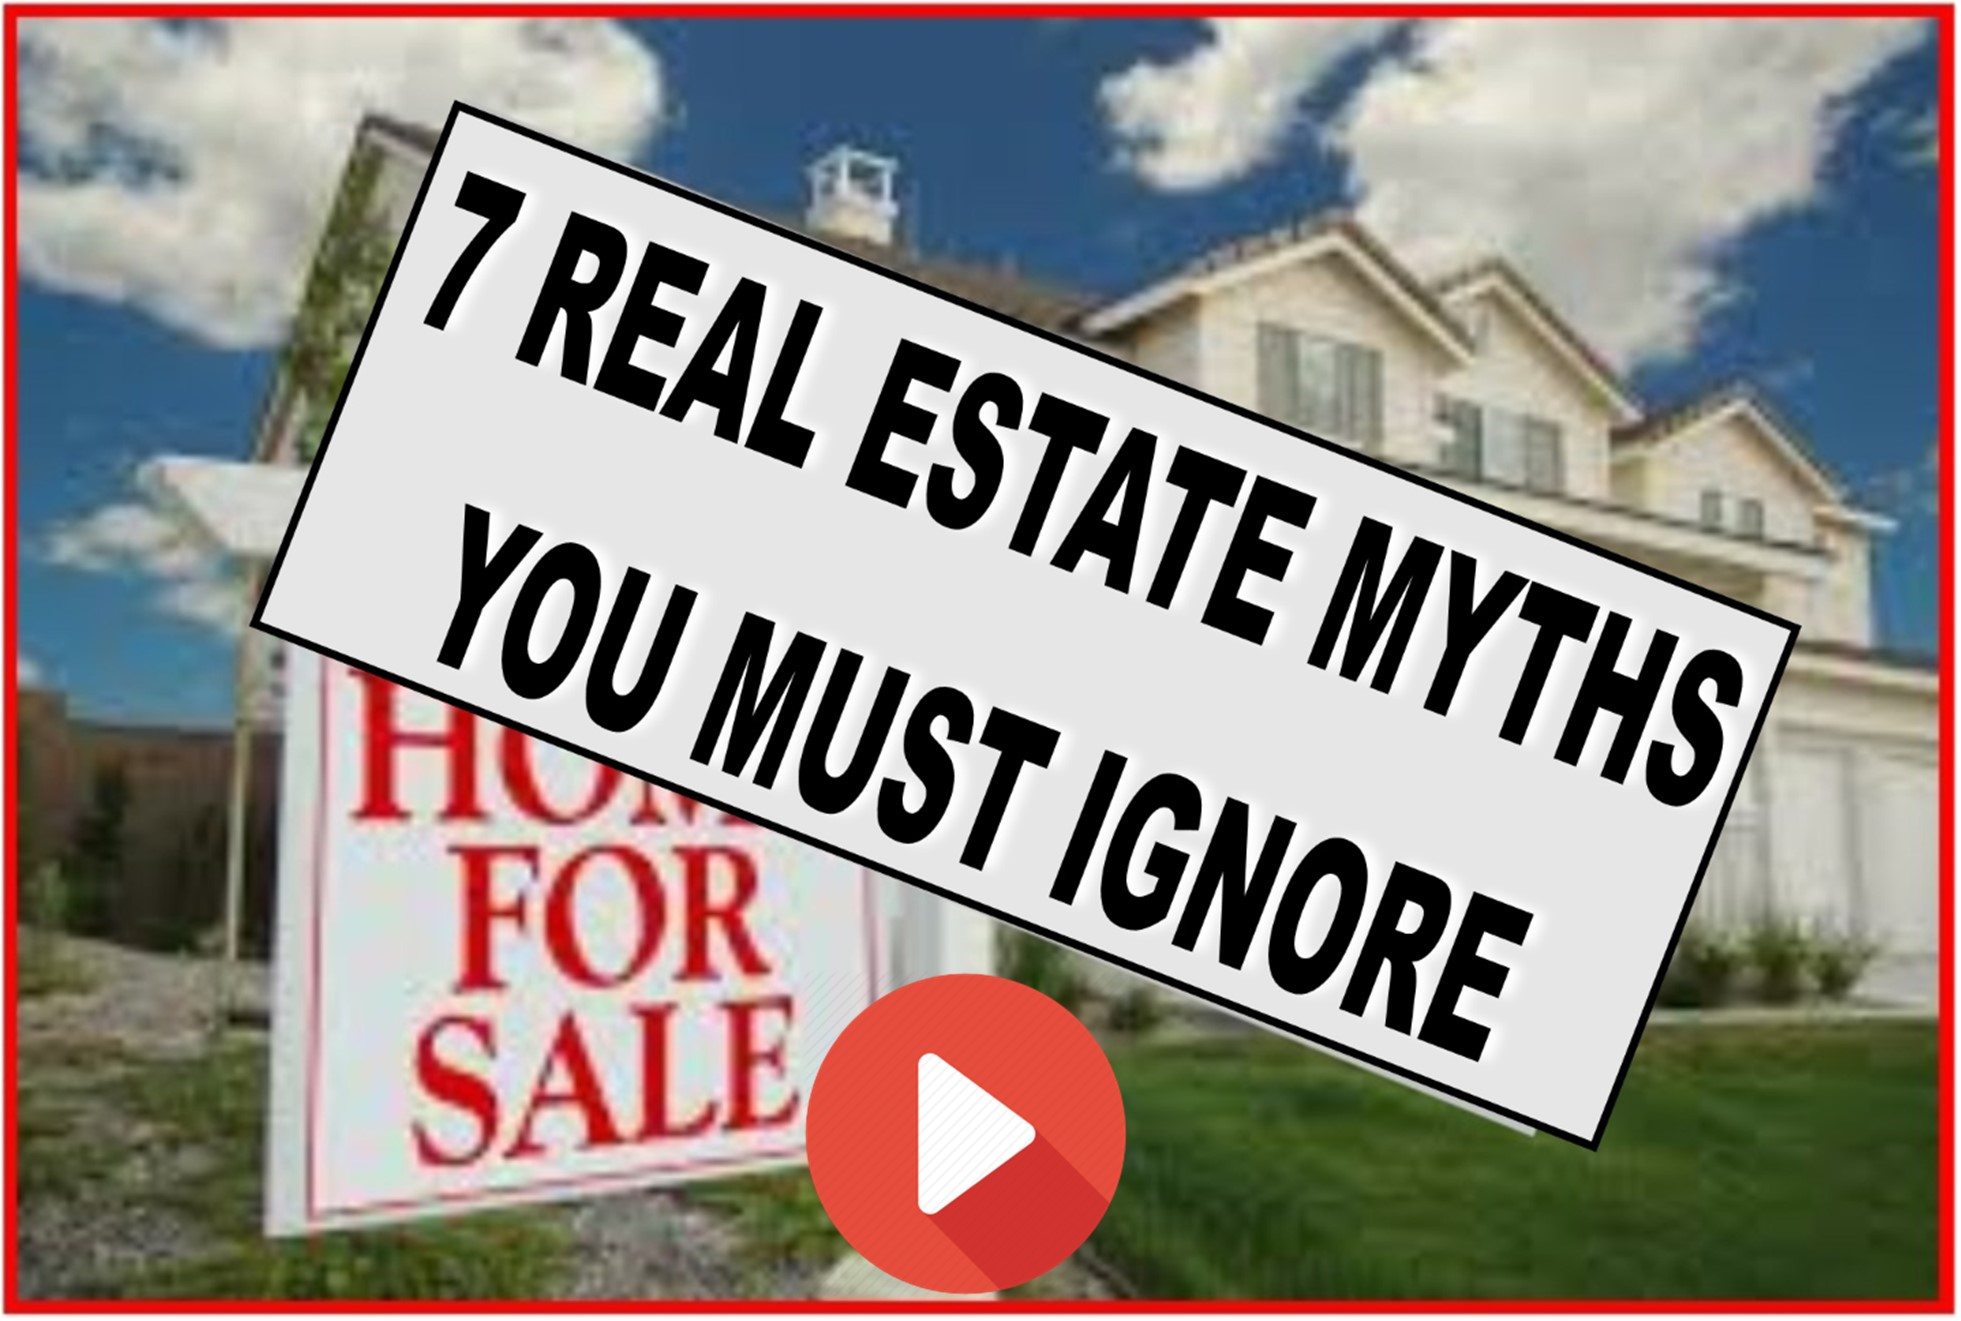 7-real-estate-myths-to-ignore